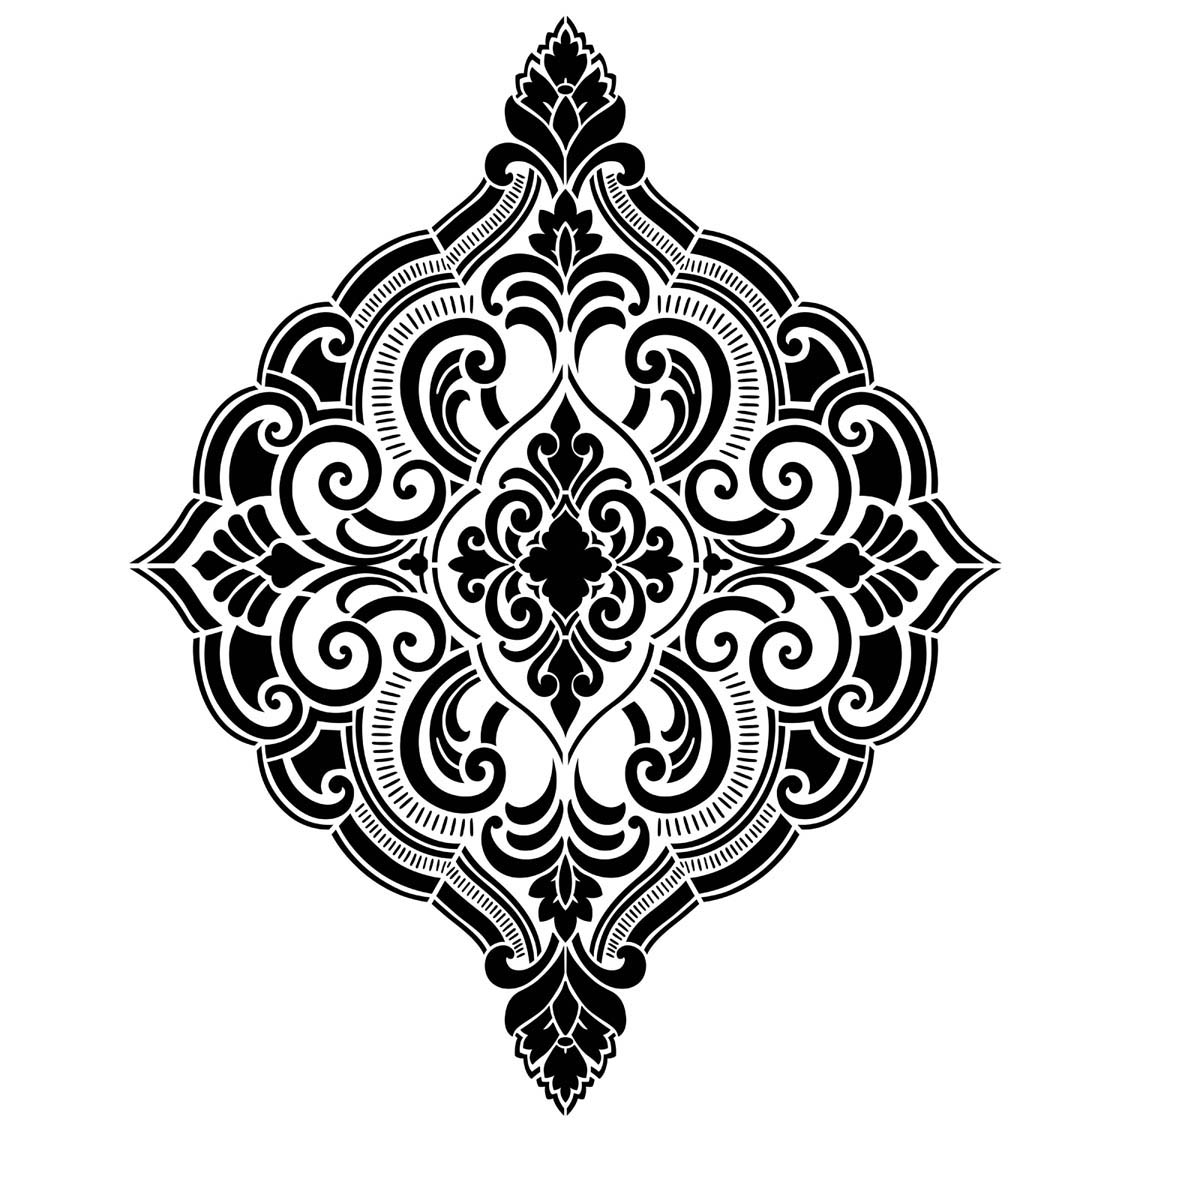 FolkArt ® Painting Stencils - Wall, Floor & Furniture - Ornate Damask